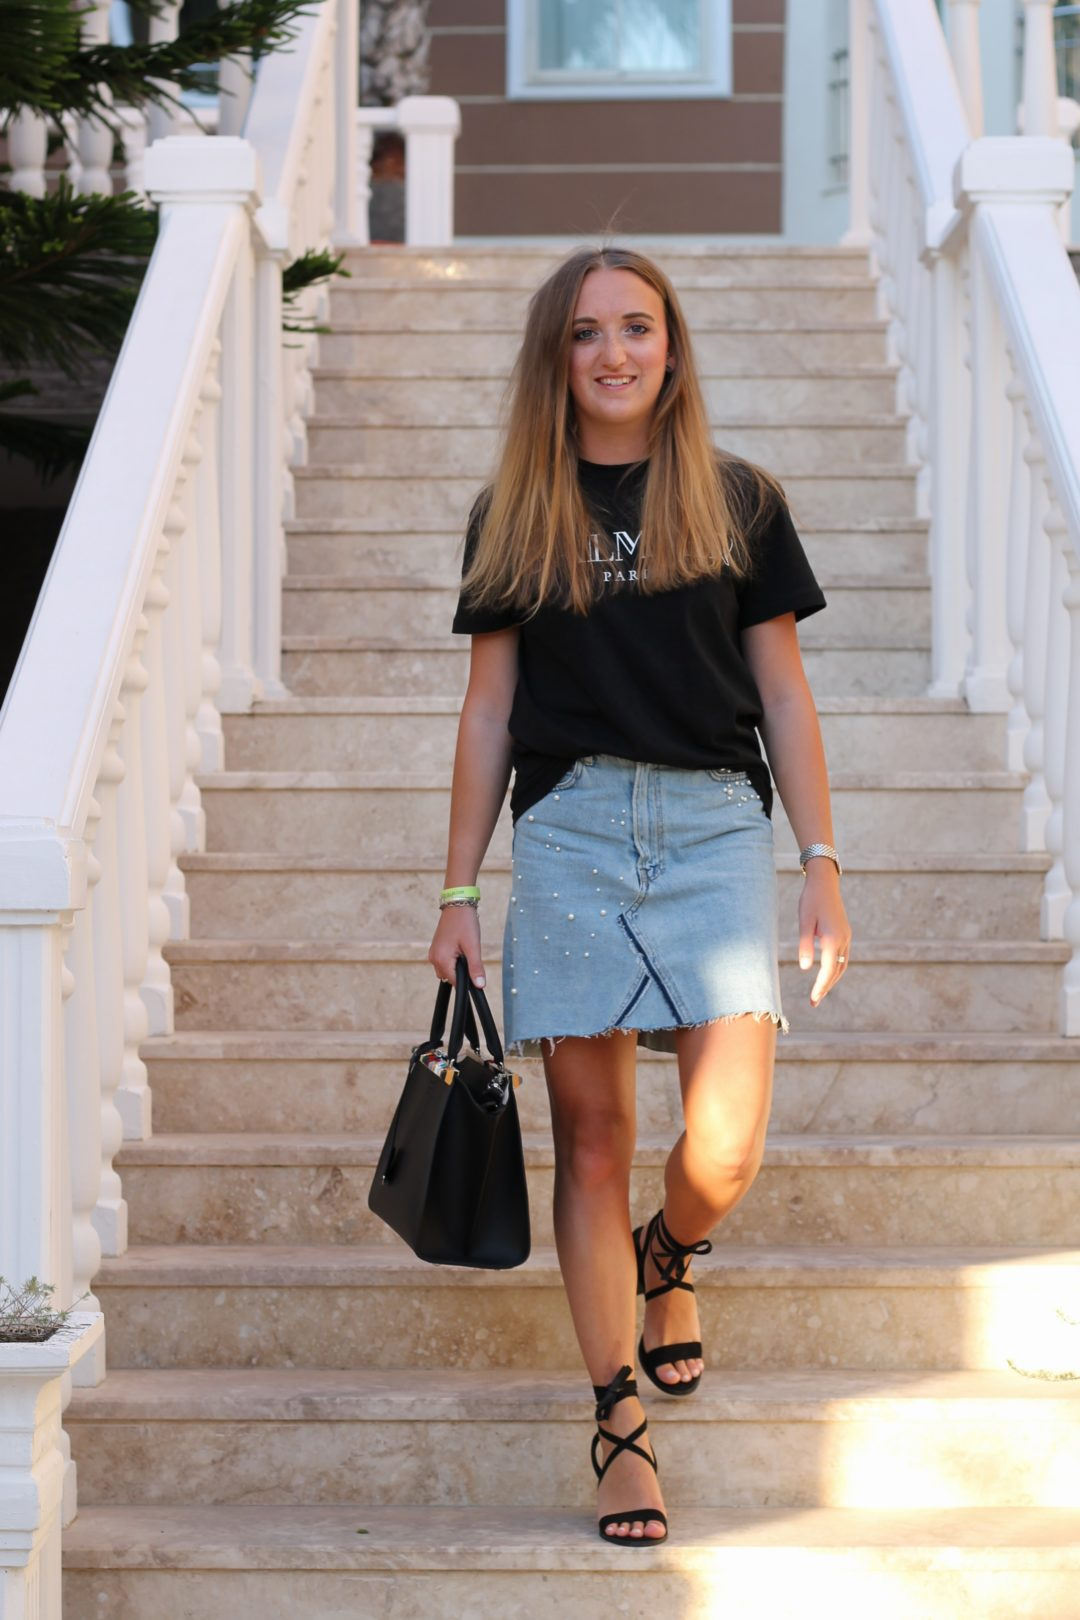 Balmain shirt and jeans skirt - Time for the second last vacation outfit! I am pretty sure you all know my white Balmain shirt (I loooove wearing it) and...@wiebkembg